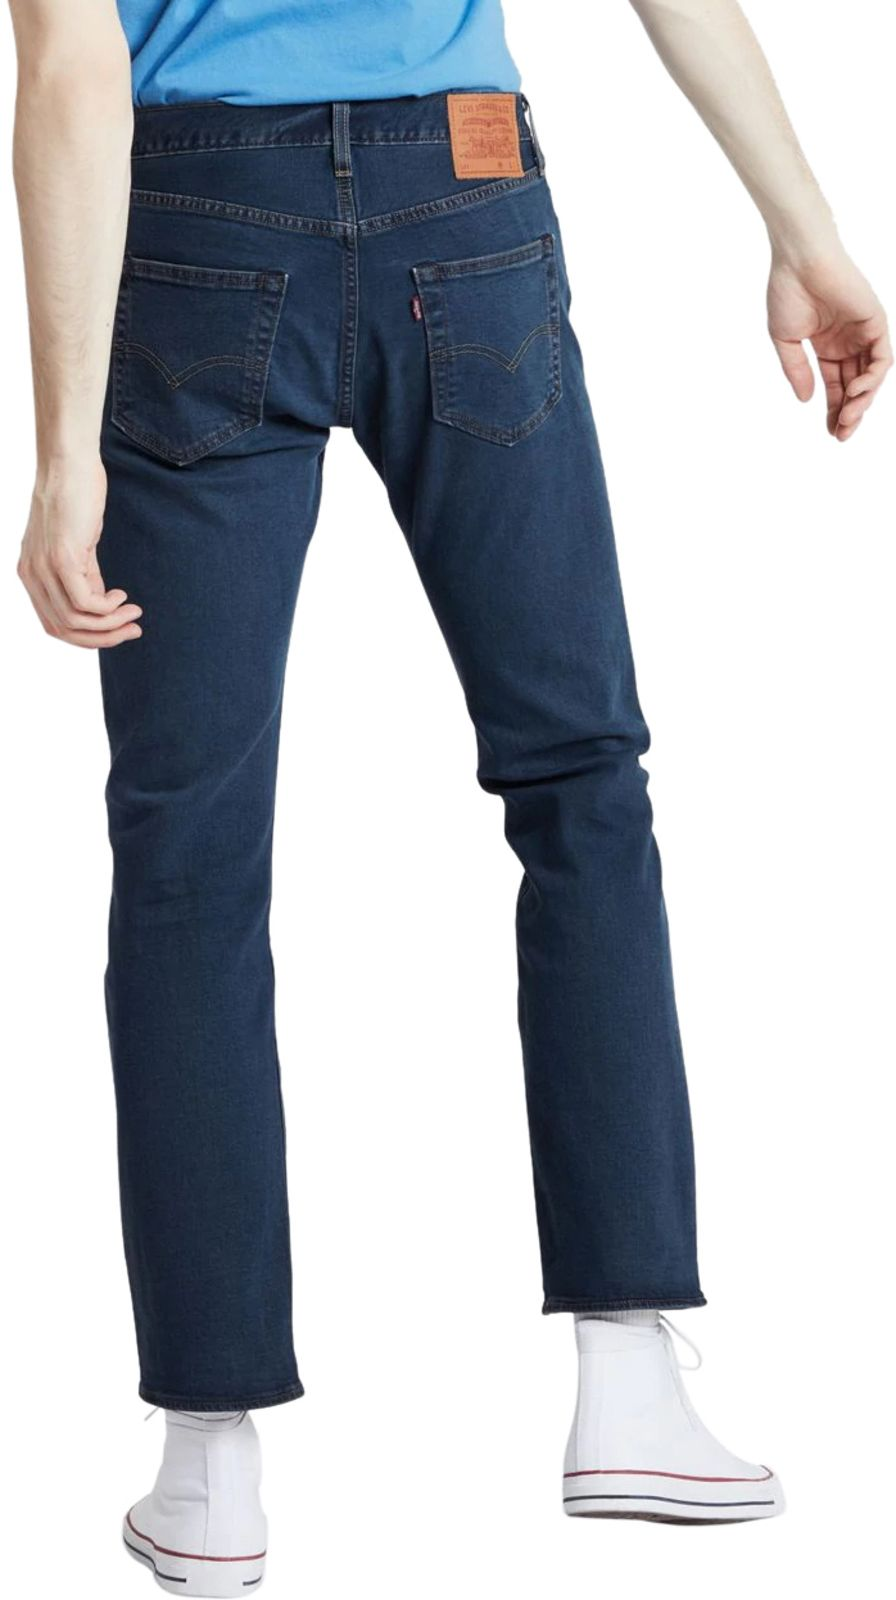 Levi's 501 Original Denim Jeans Blue